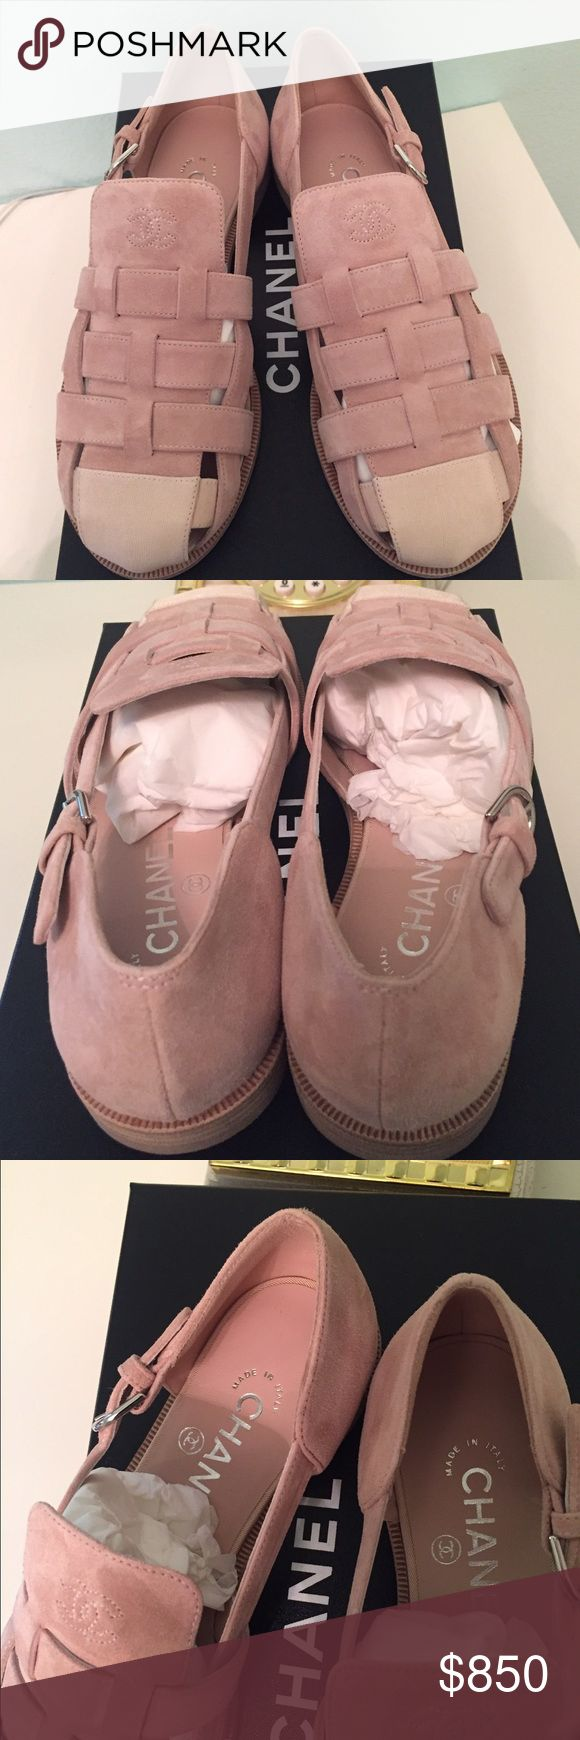 chanel open shoes summer 2017 chanel popular shoe hard to find sizes in these lovely